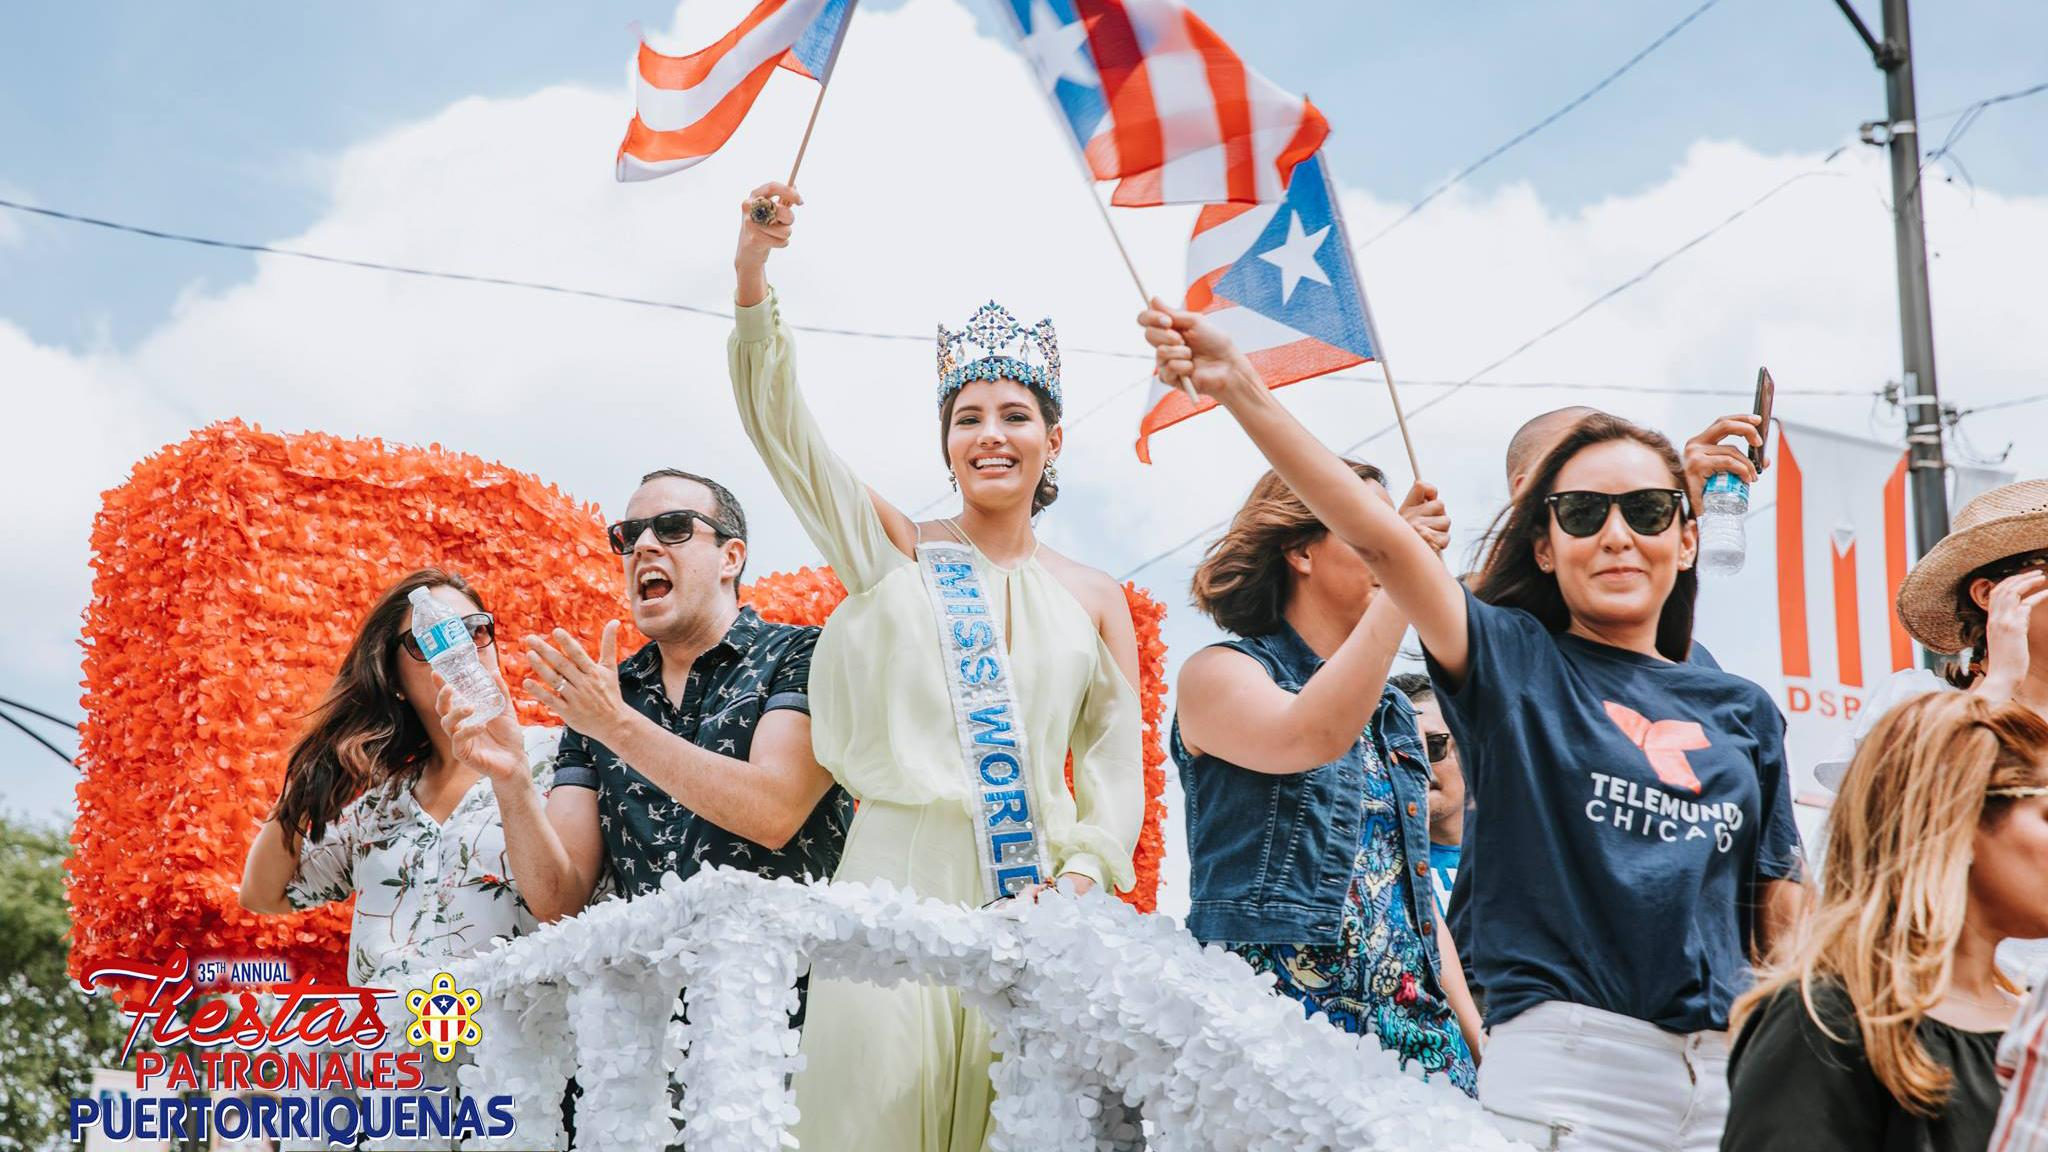 (Puerto Rican Parade Chicago / Facebook)